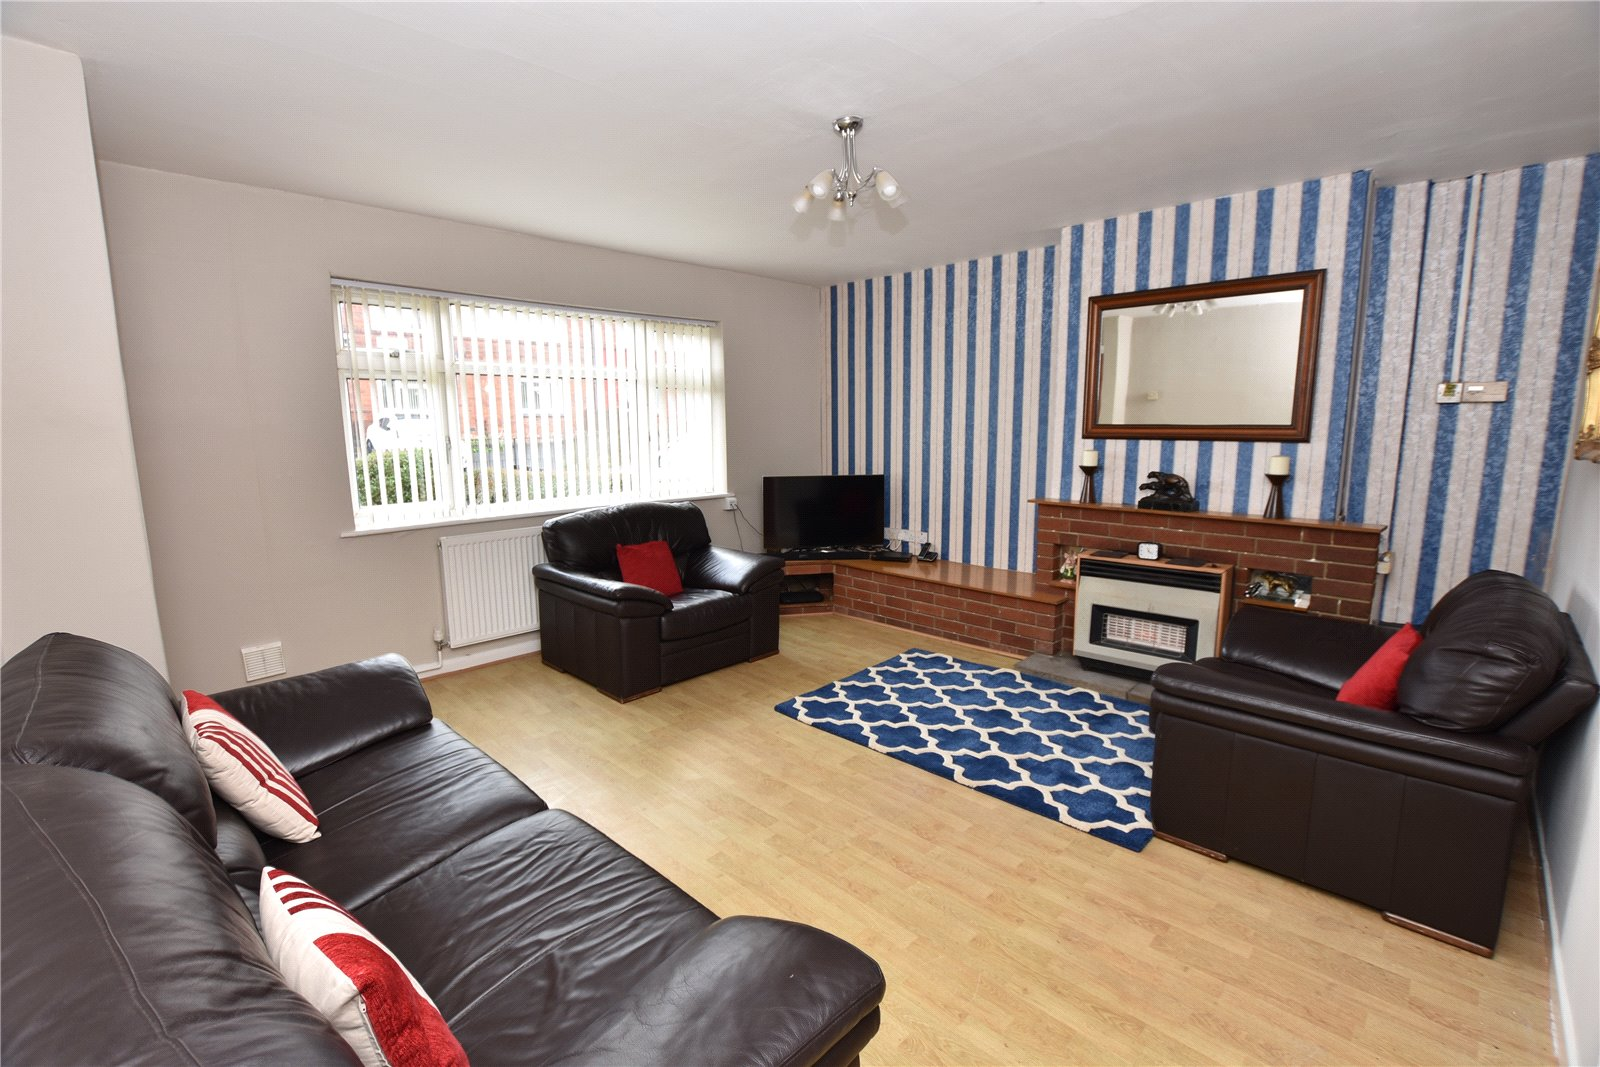 Property for sale in Crossgates interior reception room spacious